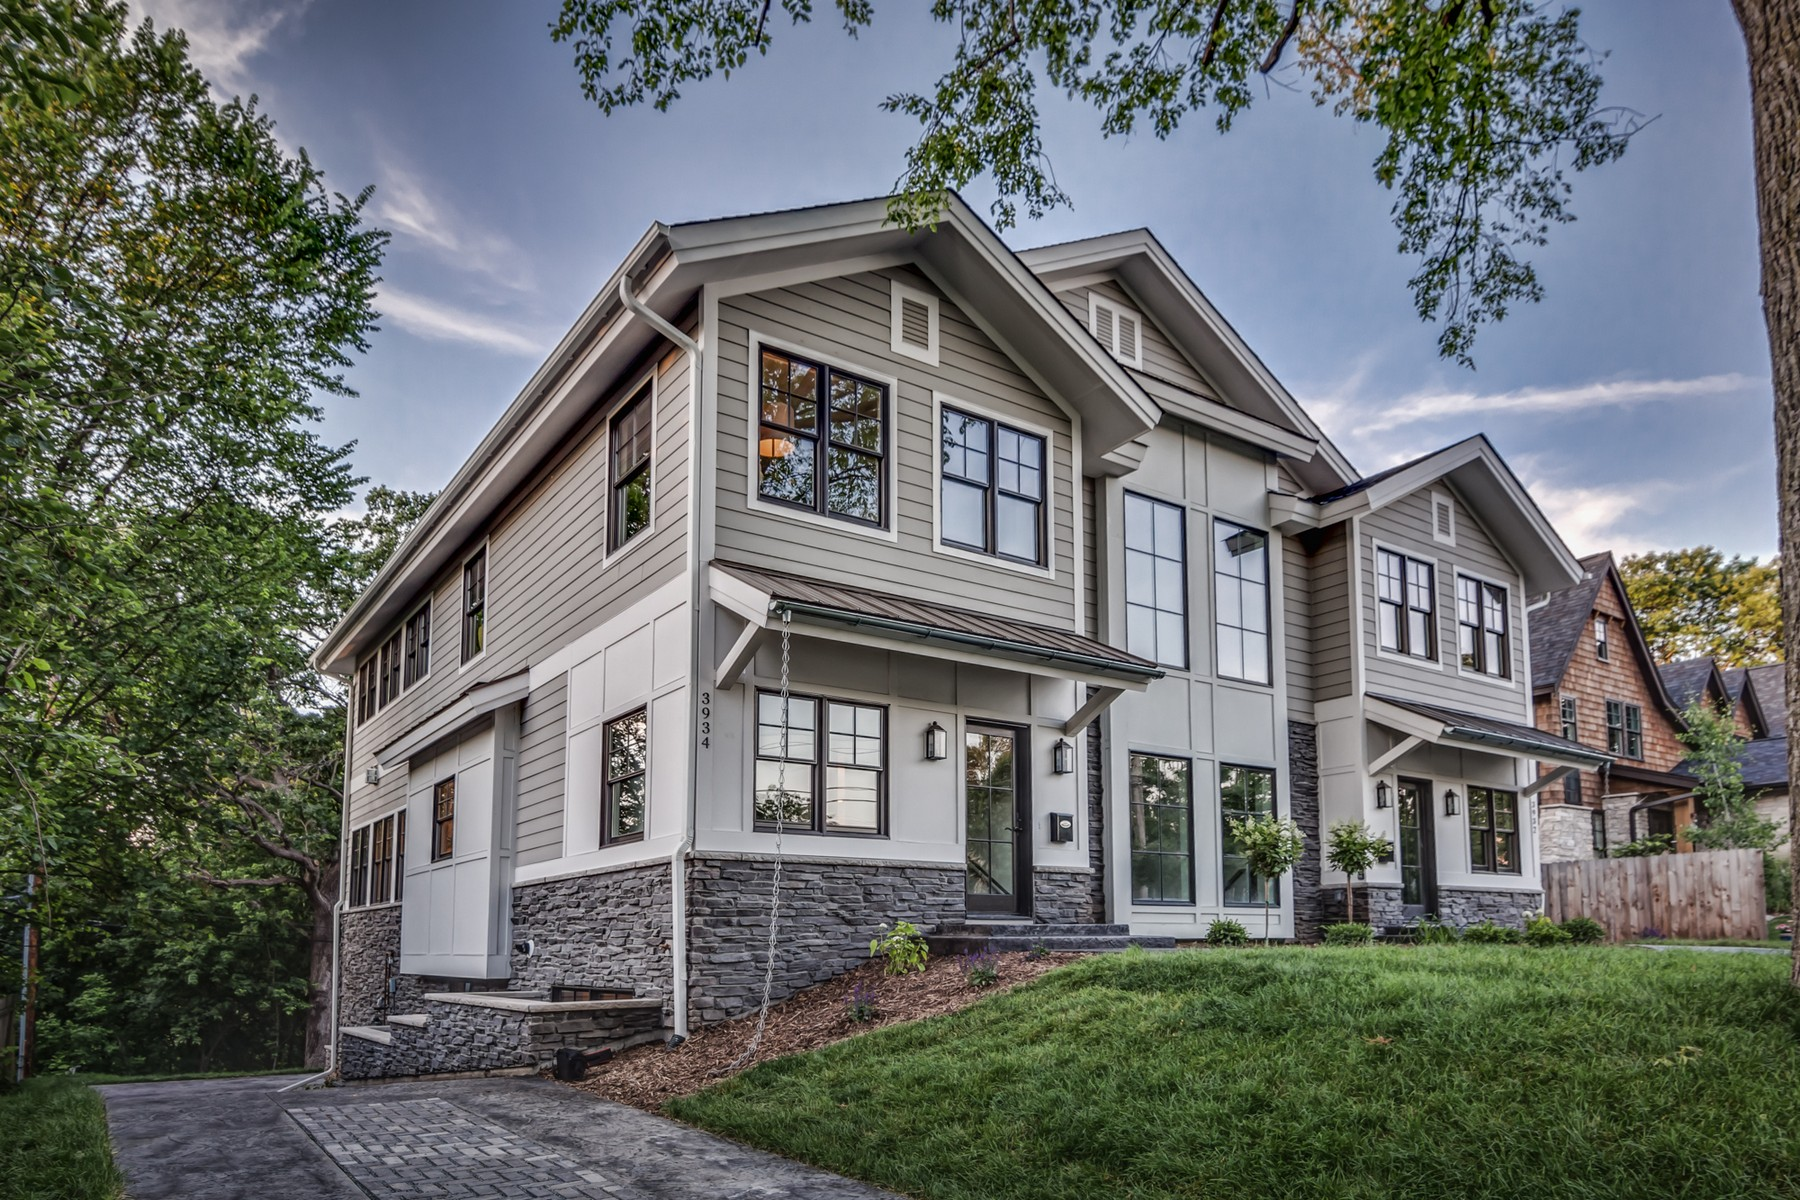 Townhouse for Sale at 3932 W 49th St Edina, Minnesota 55424 United States